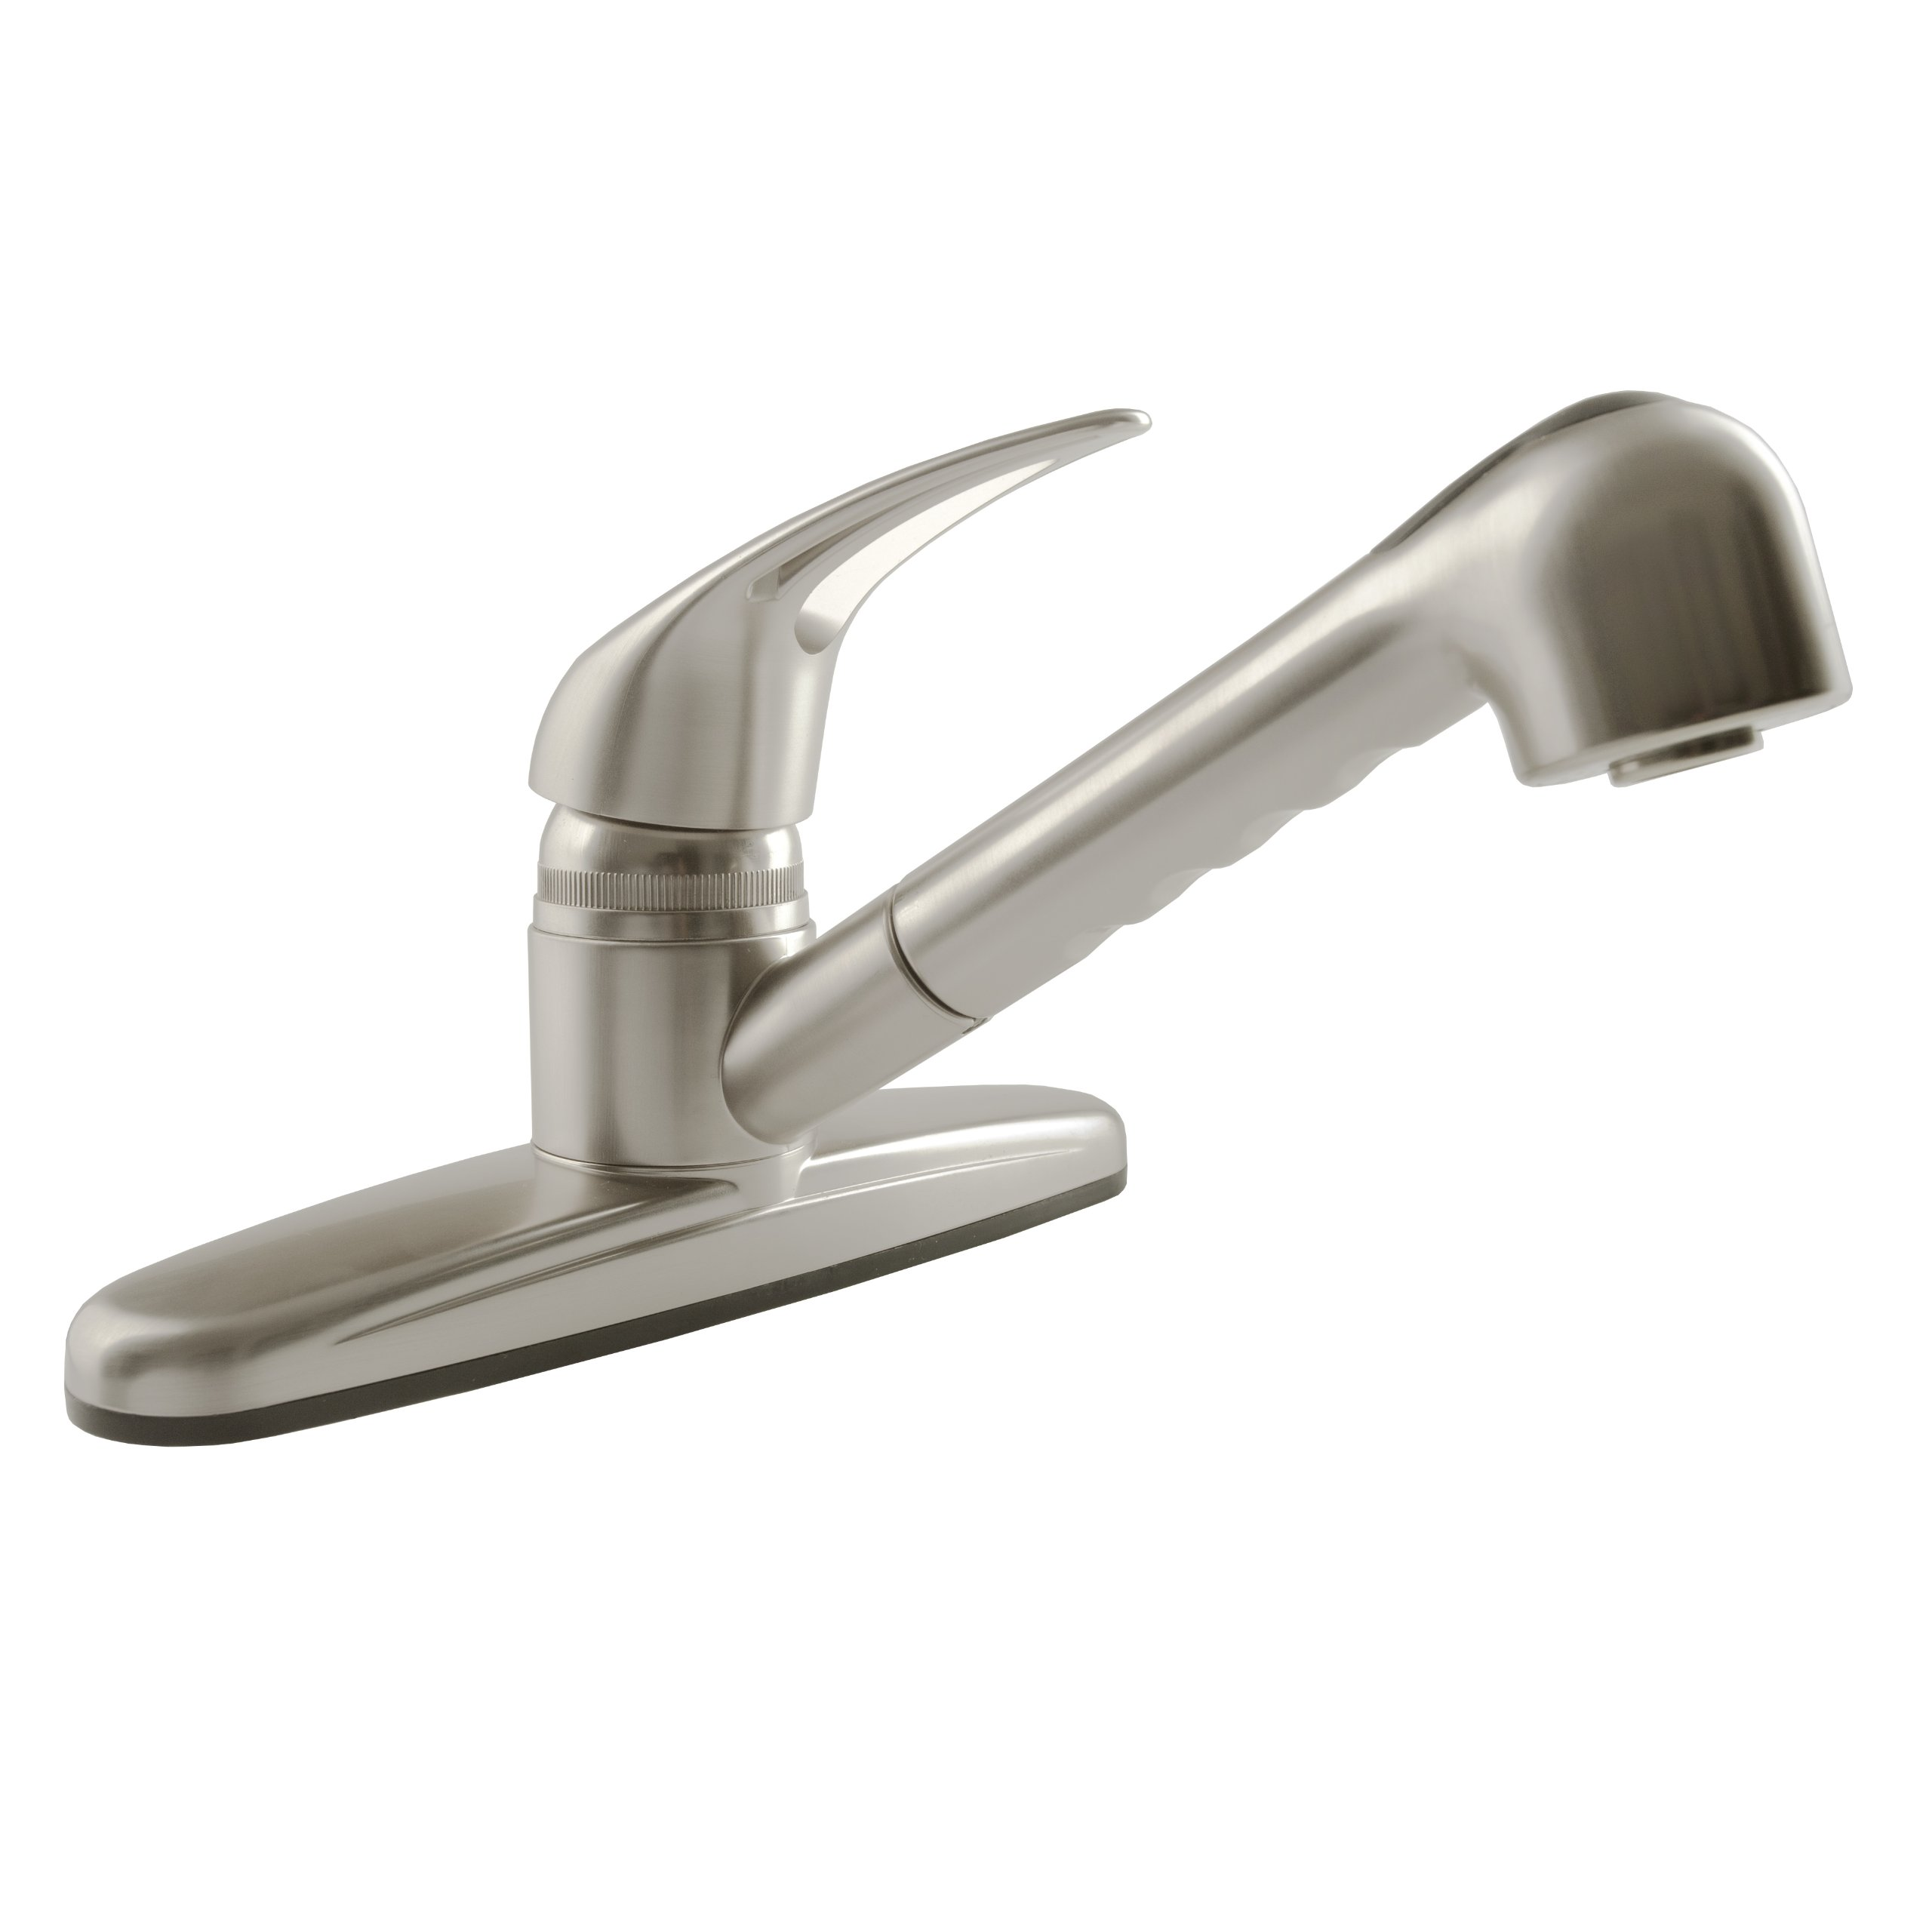 Dura Faucet RV Pull Out Kitchen Faucet - Non-Metallic Replacement for Motorhomes, Trailers, 5th Wheels and Campers (Brushed Satin Nickel) by Dura Faucet (Image #1)